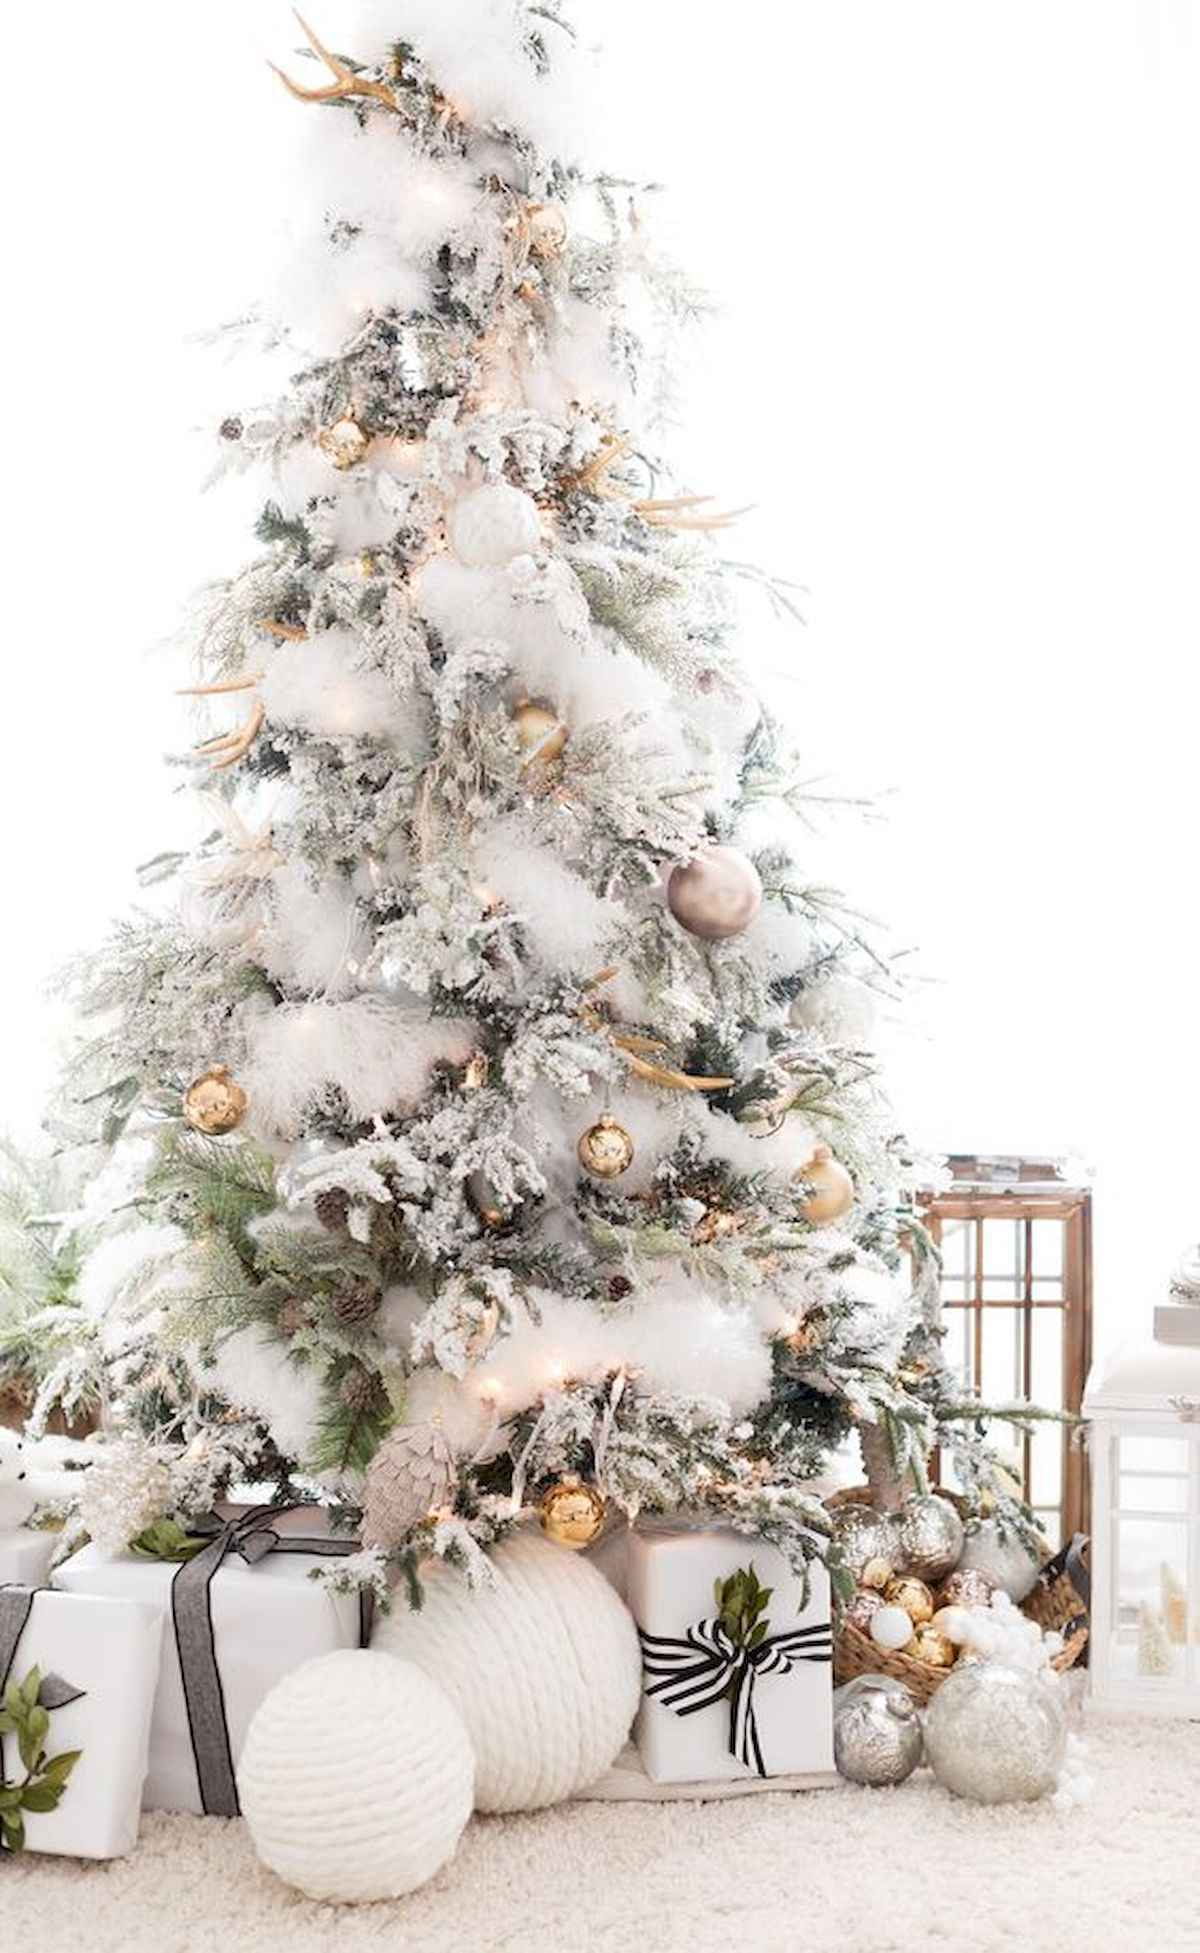 60 awesome christmas tree decorations ideas (6)